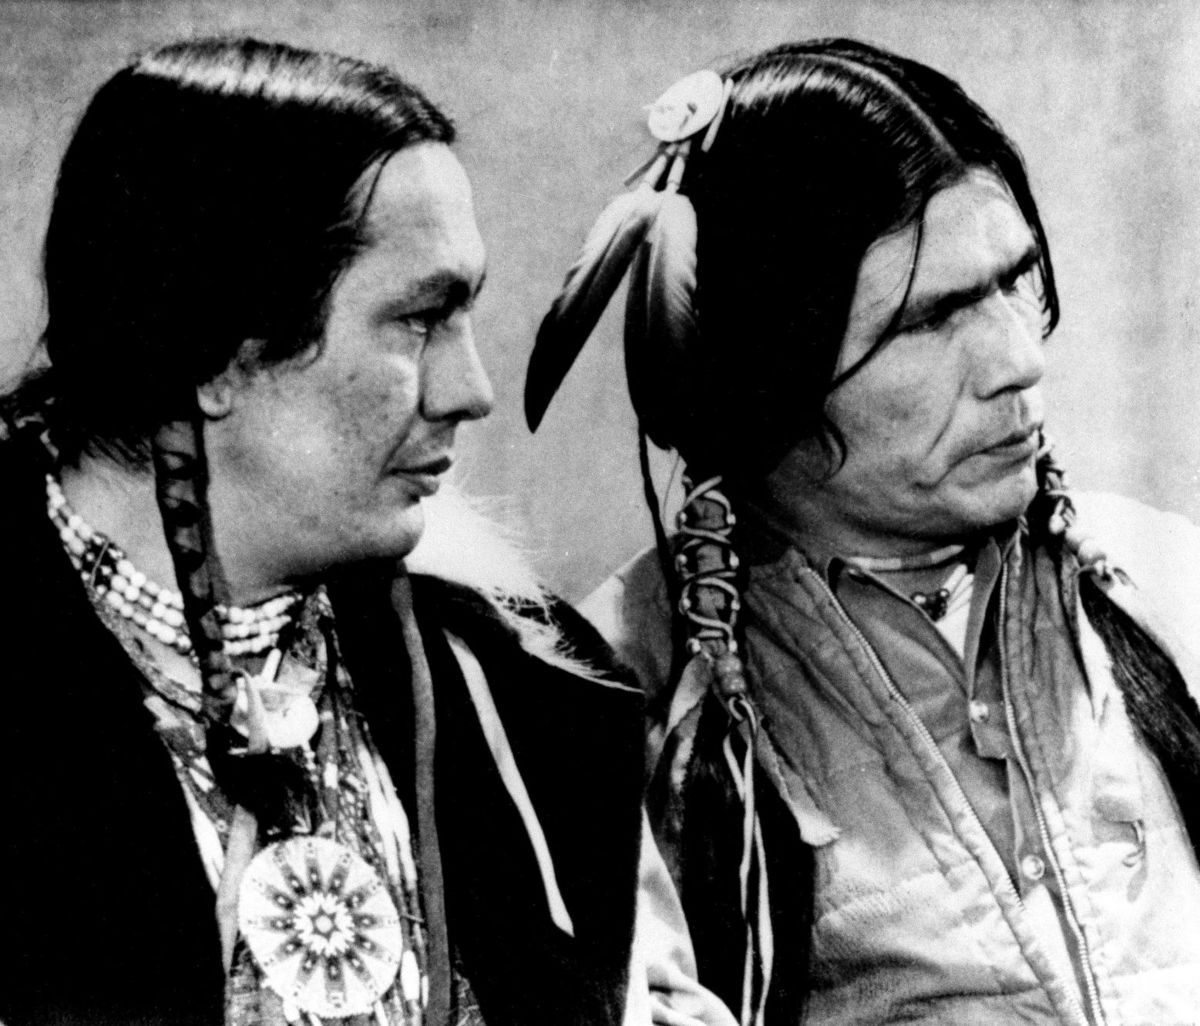 Native American activist Dennis Banks' life in photos